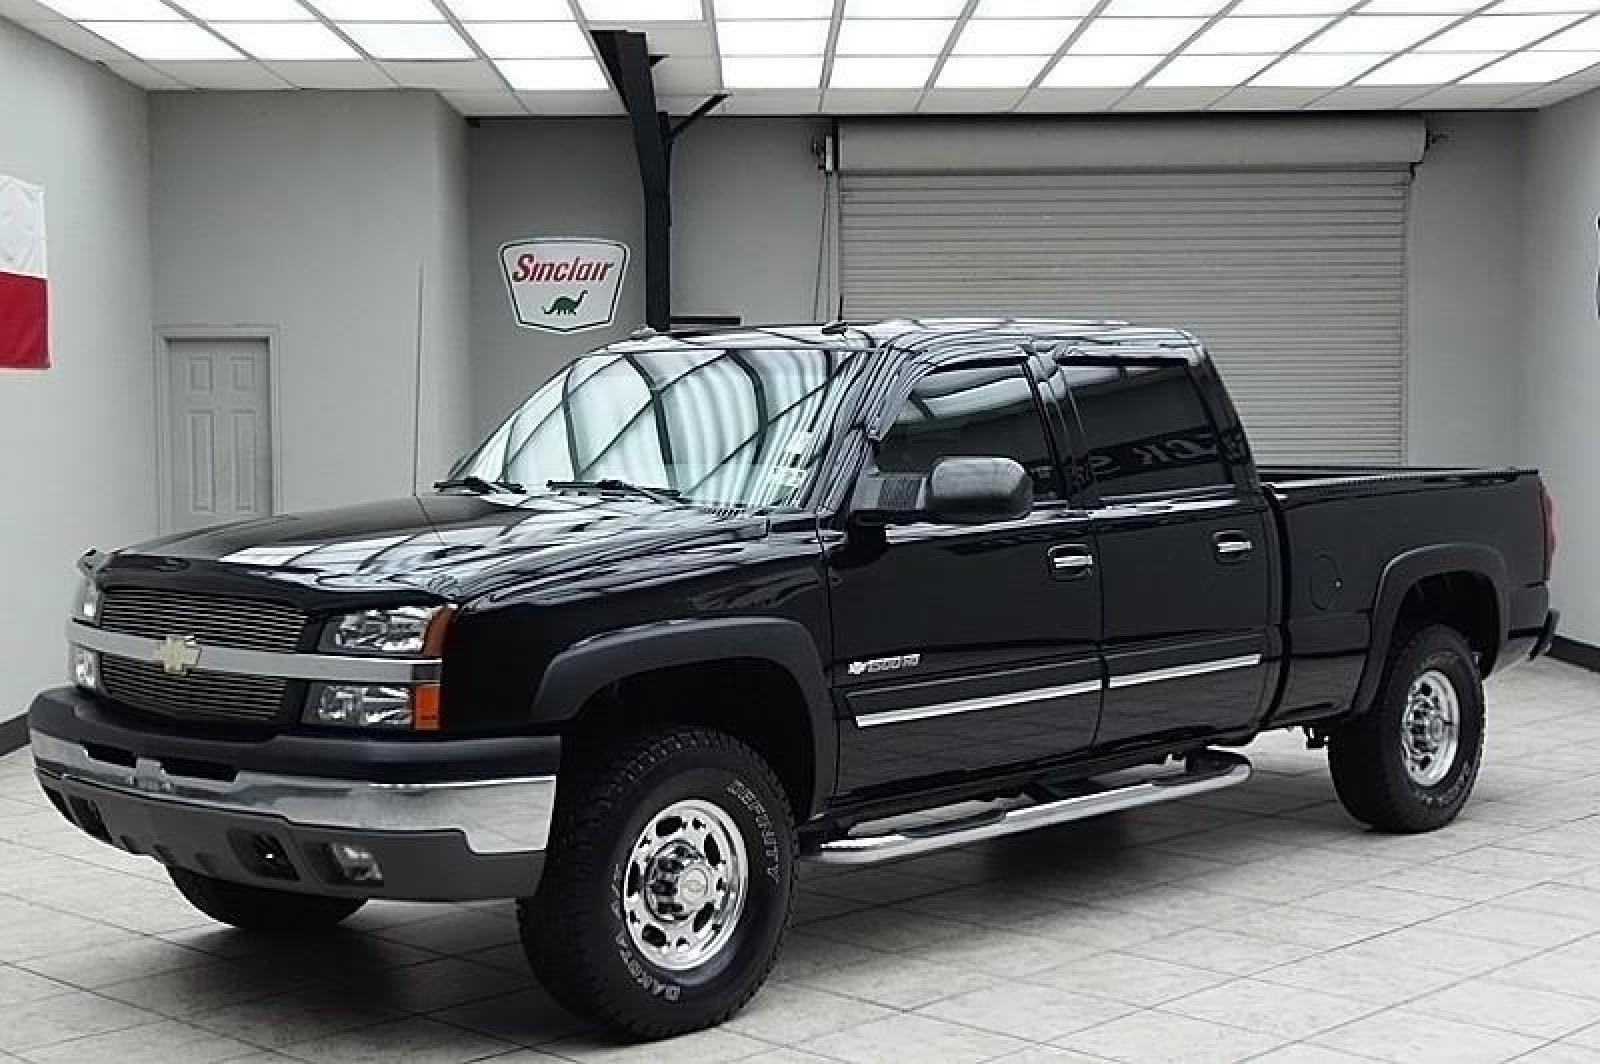 2002 chevrolet silverado 1500 hd ls vs lt difference autos post. Black Bedroom Furniture Sets. Home Design Ideas